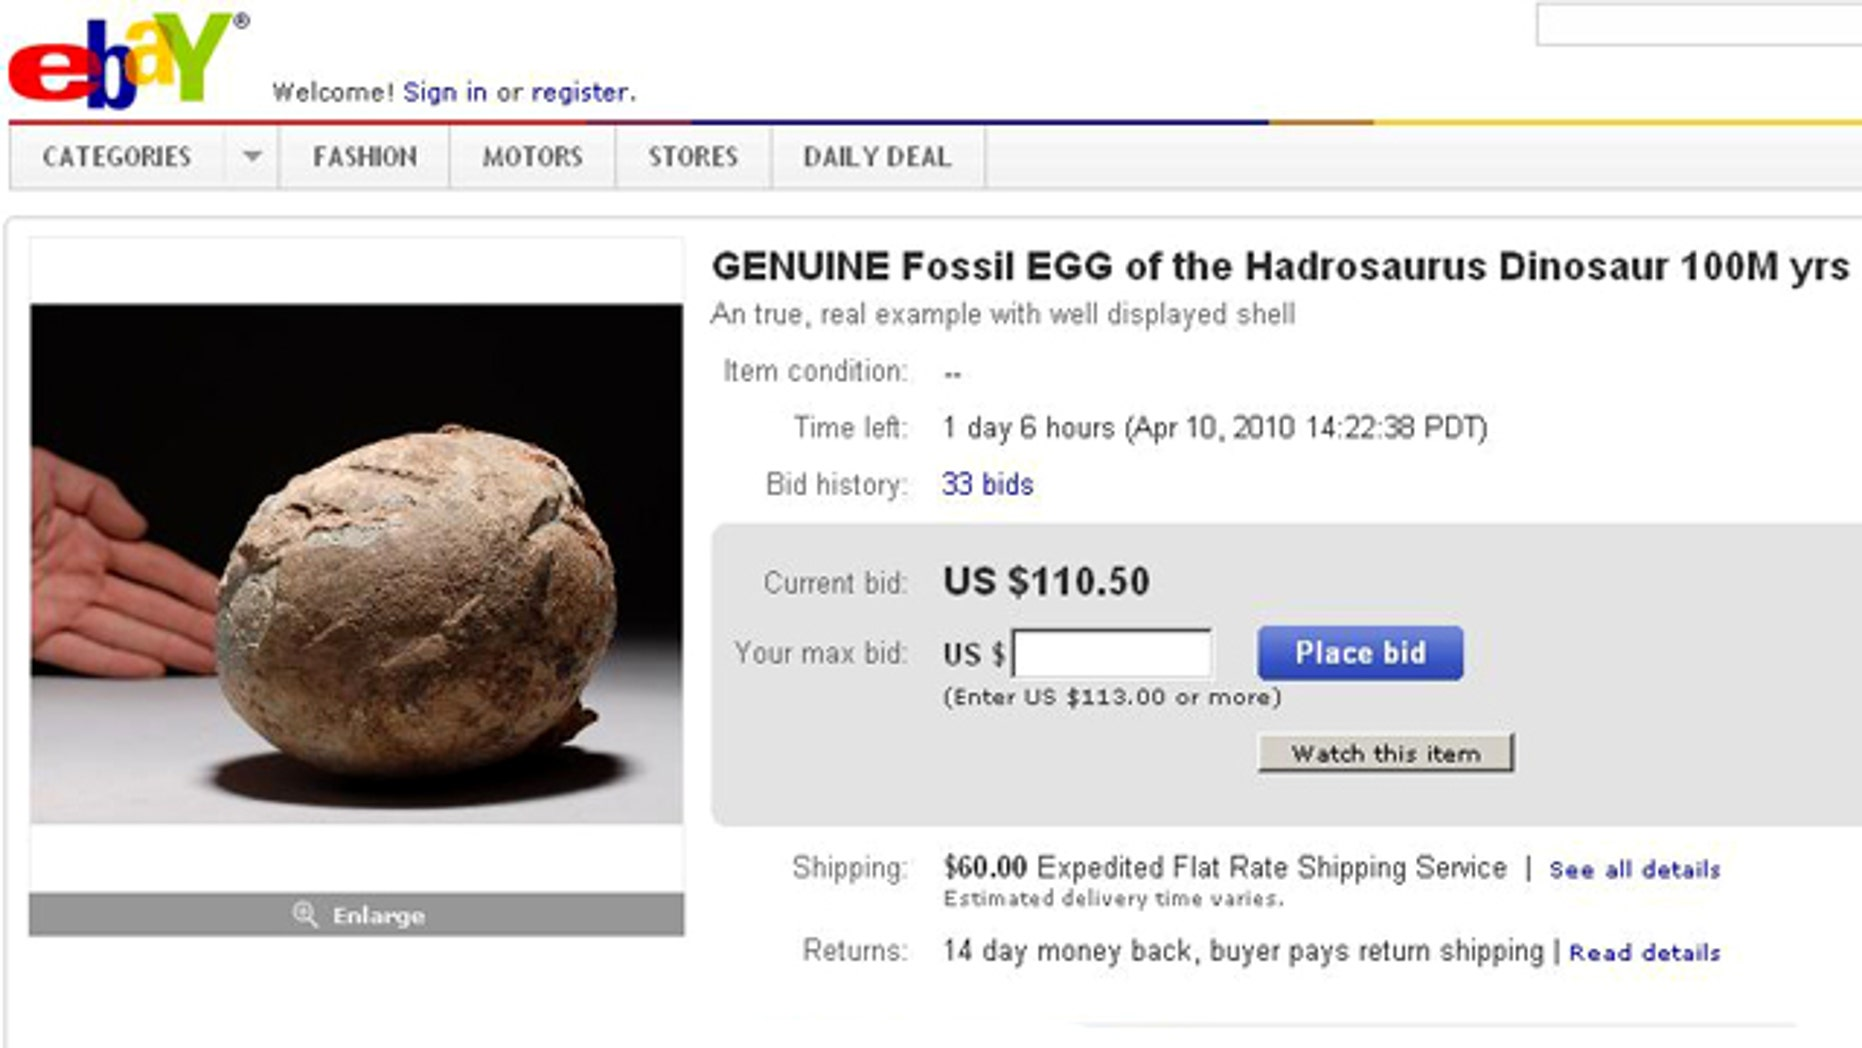 Fossils -- such as this Hadrosaurus egg on eBay -- are big business, and unfortunately can inspire theft.